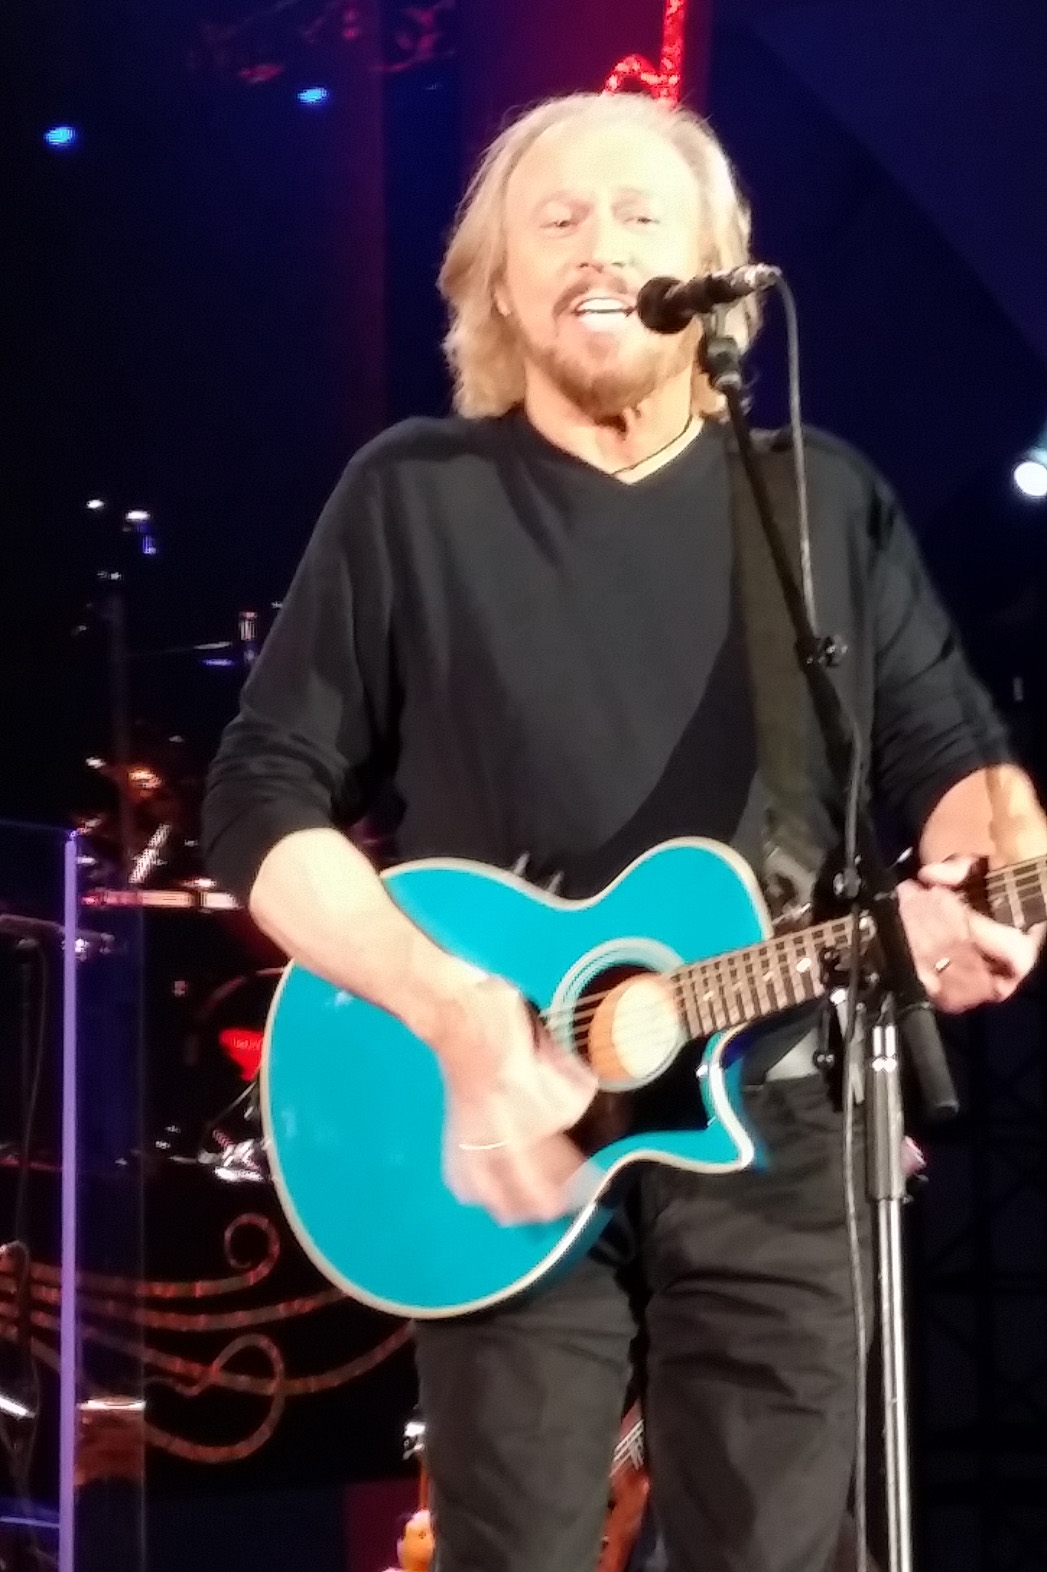 Barry Gibb at The Hollywood Bowl - P 2014